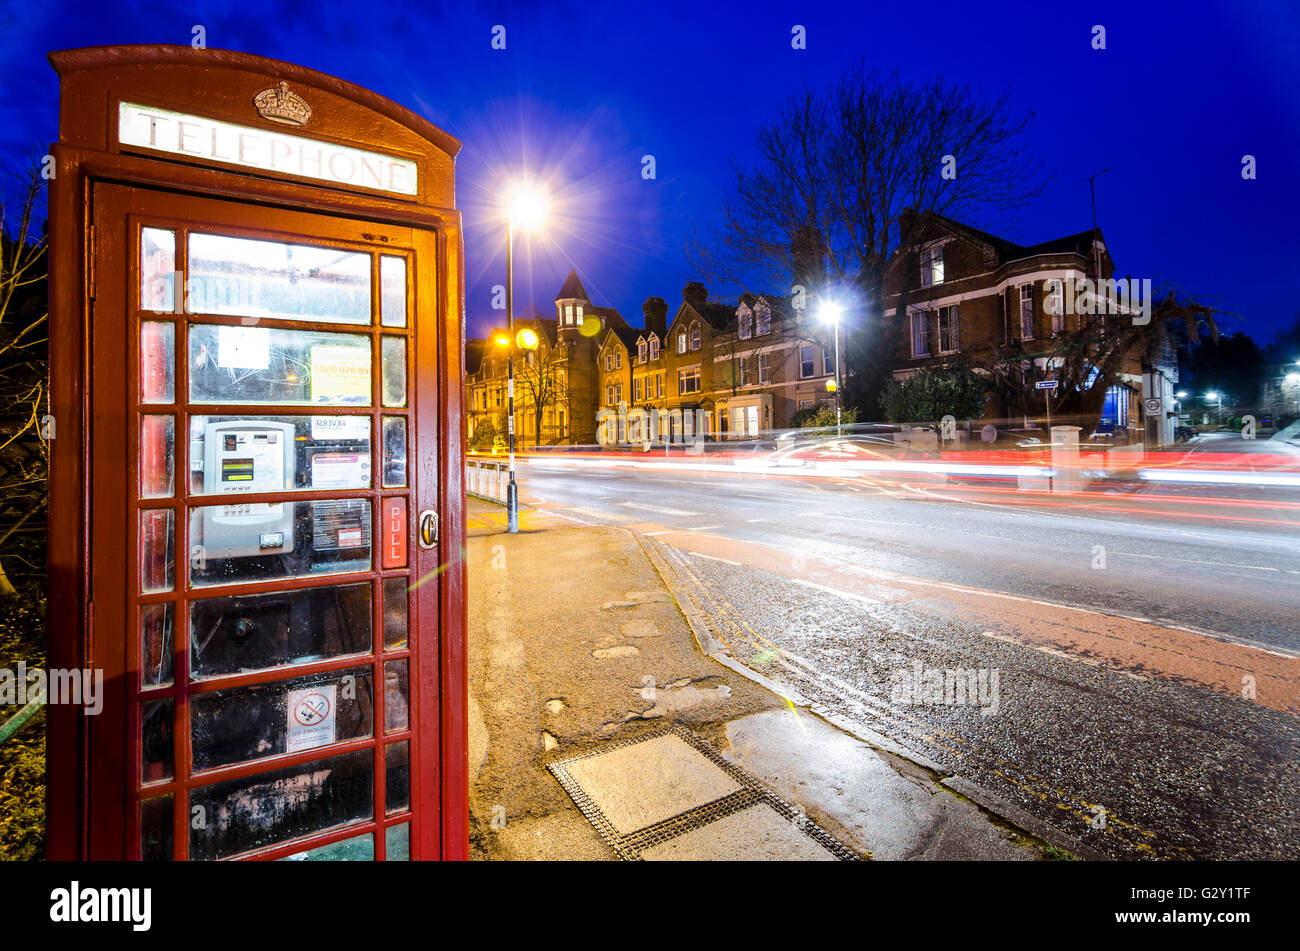 Night scene in Cambridge, UK, with red telephone box and motion blur light trails - Stock Image